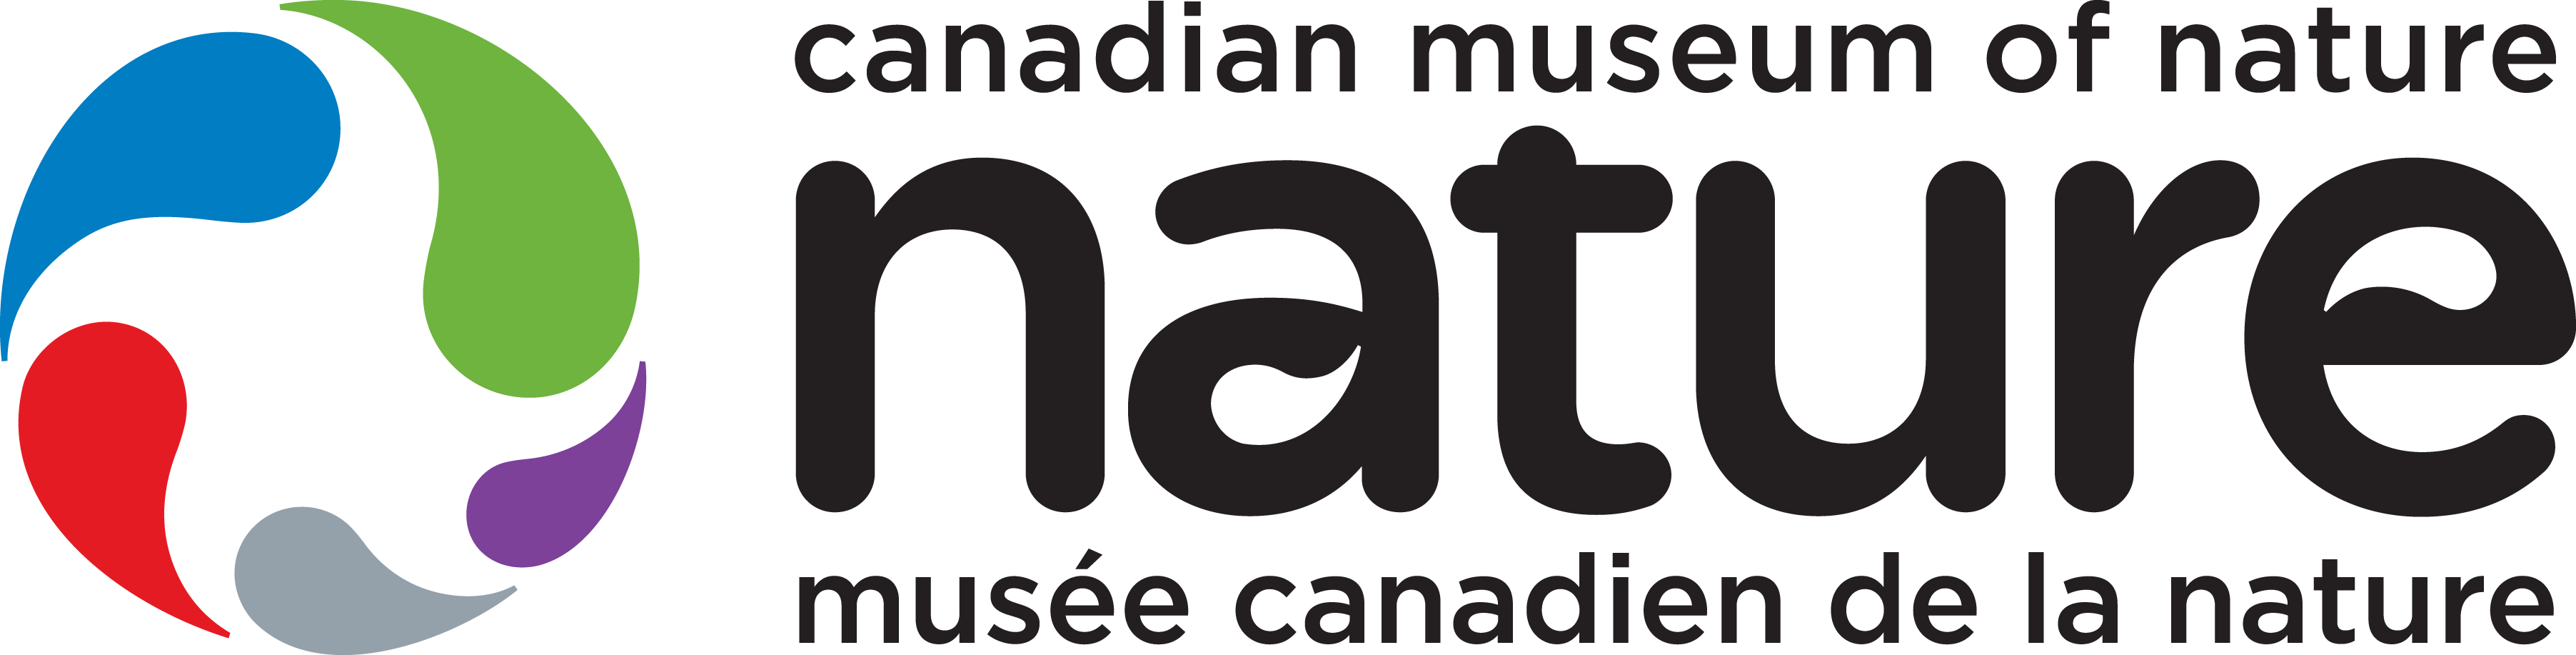 Canadian Museum of Nature Announces Winners of the 2019 Nature Inspiration Awards